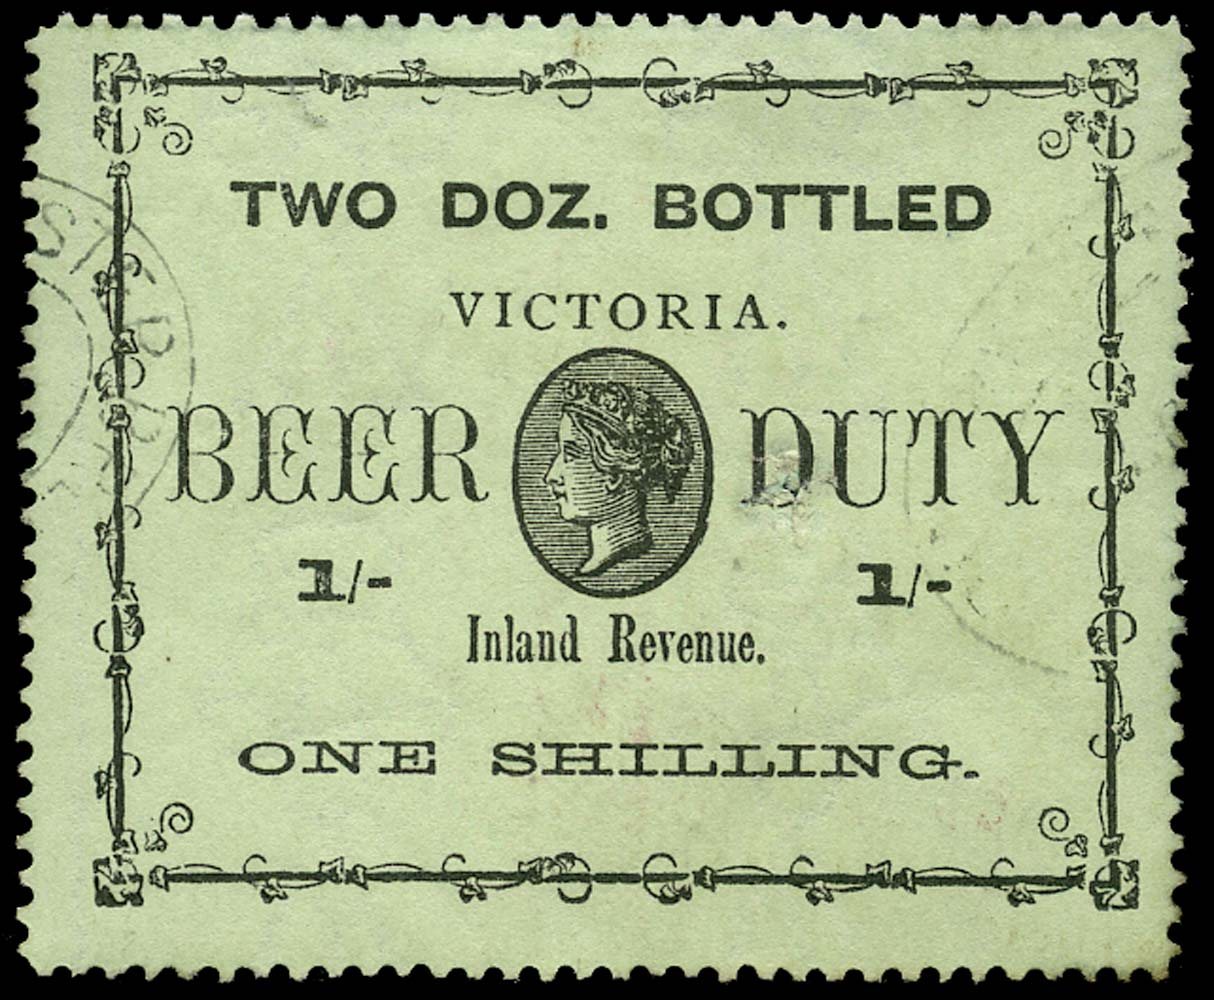 VICTORIA (AUS) 1892 Revenue Beer Duty